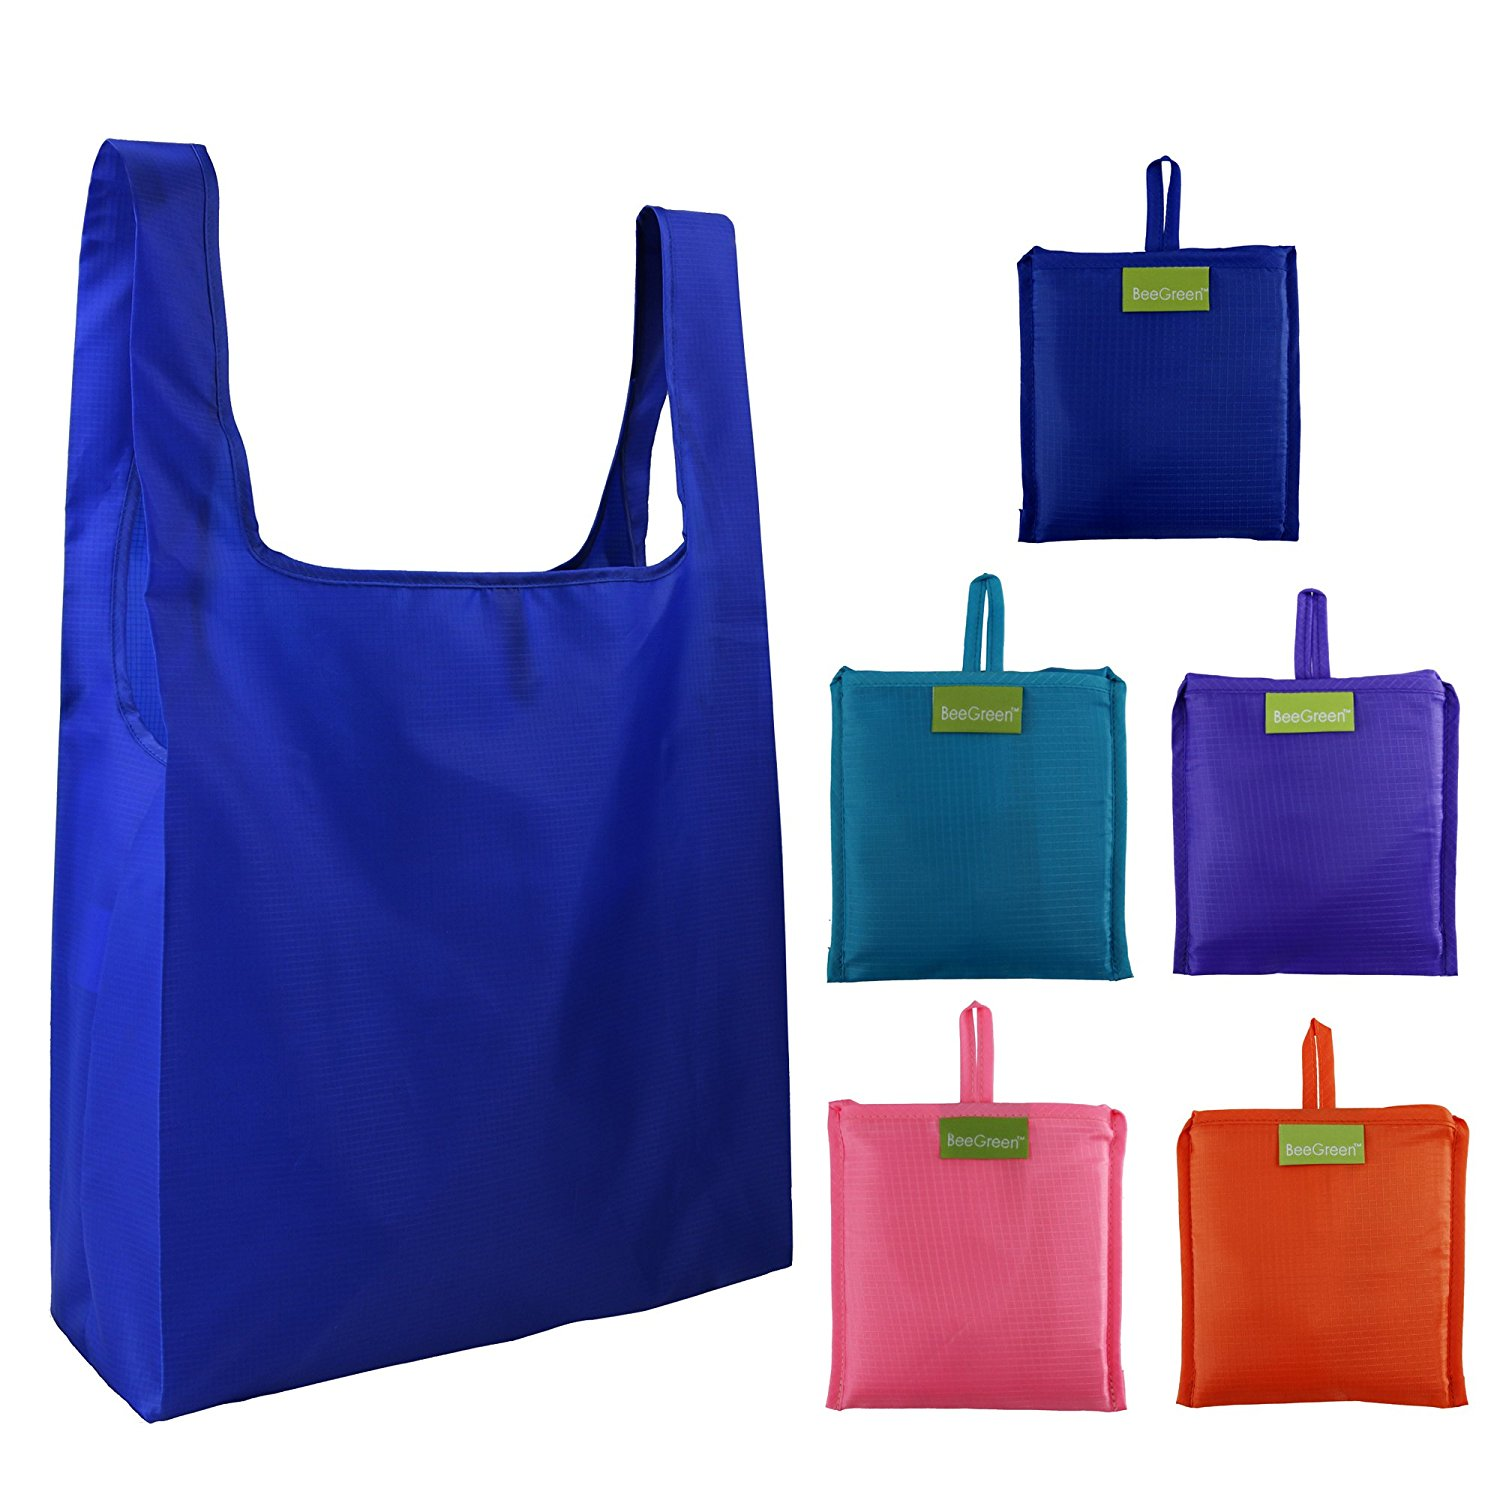 Use reusable cloth bags to reduce plastic waste